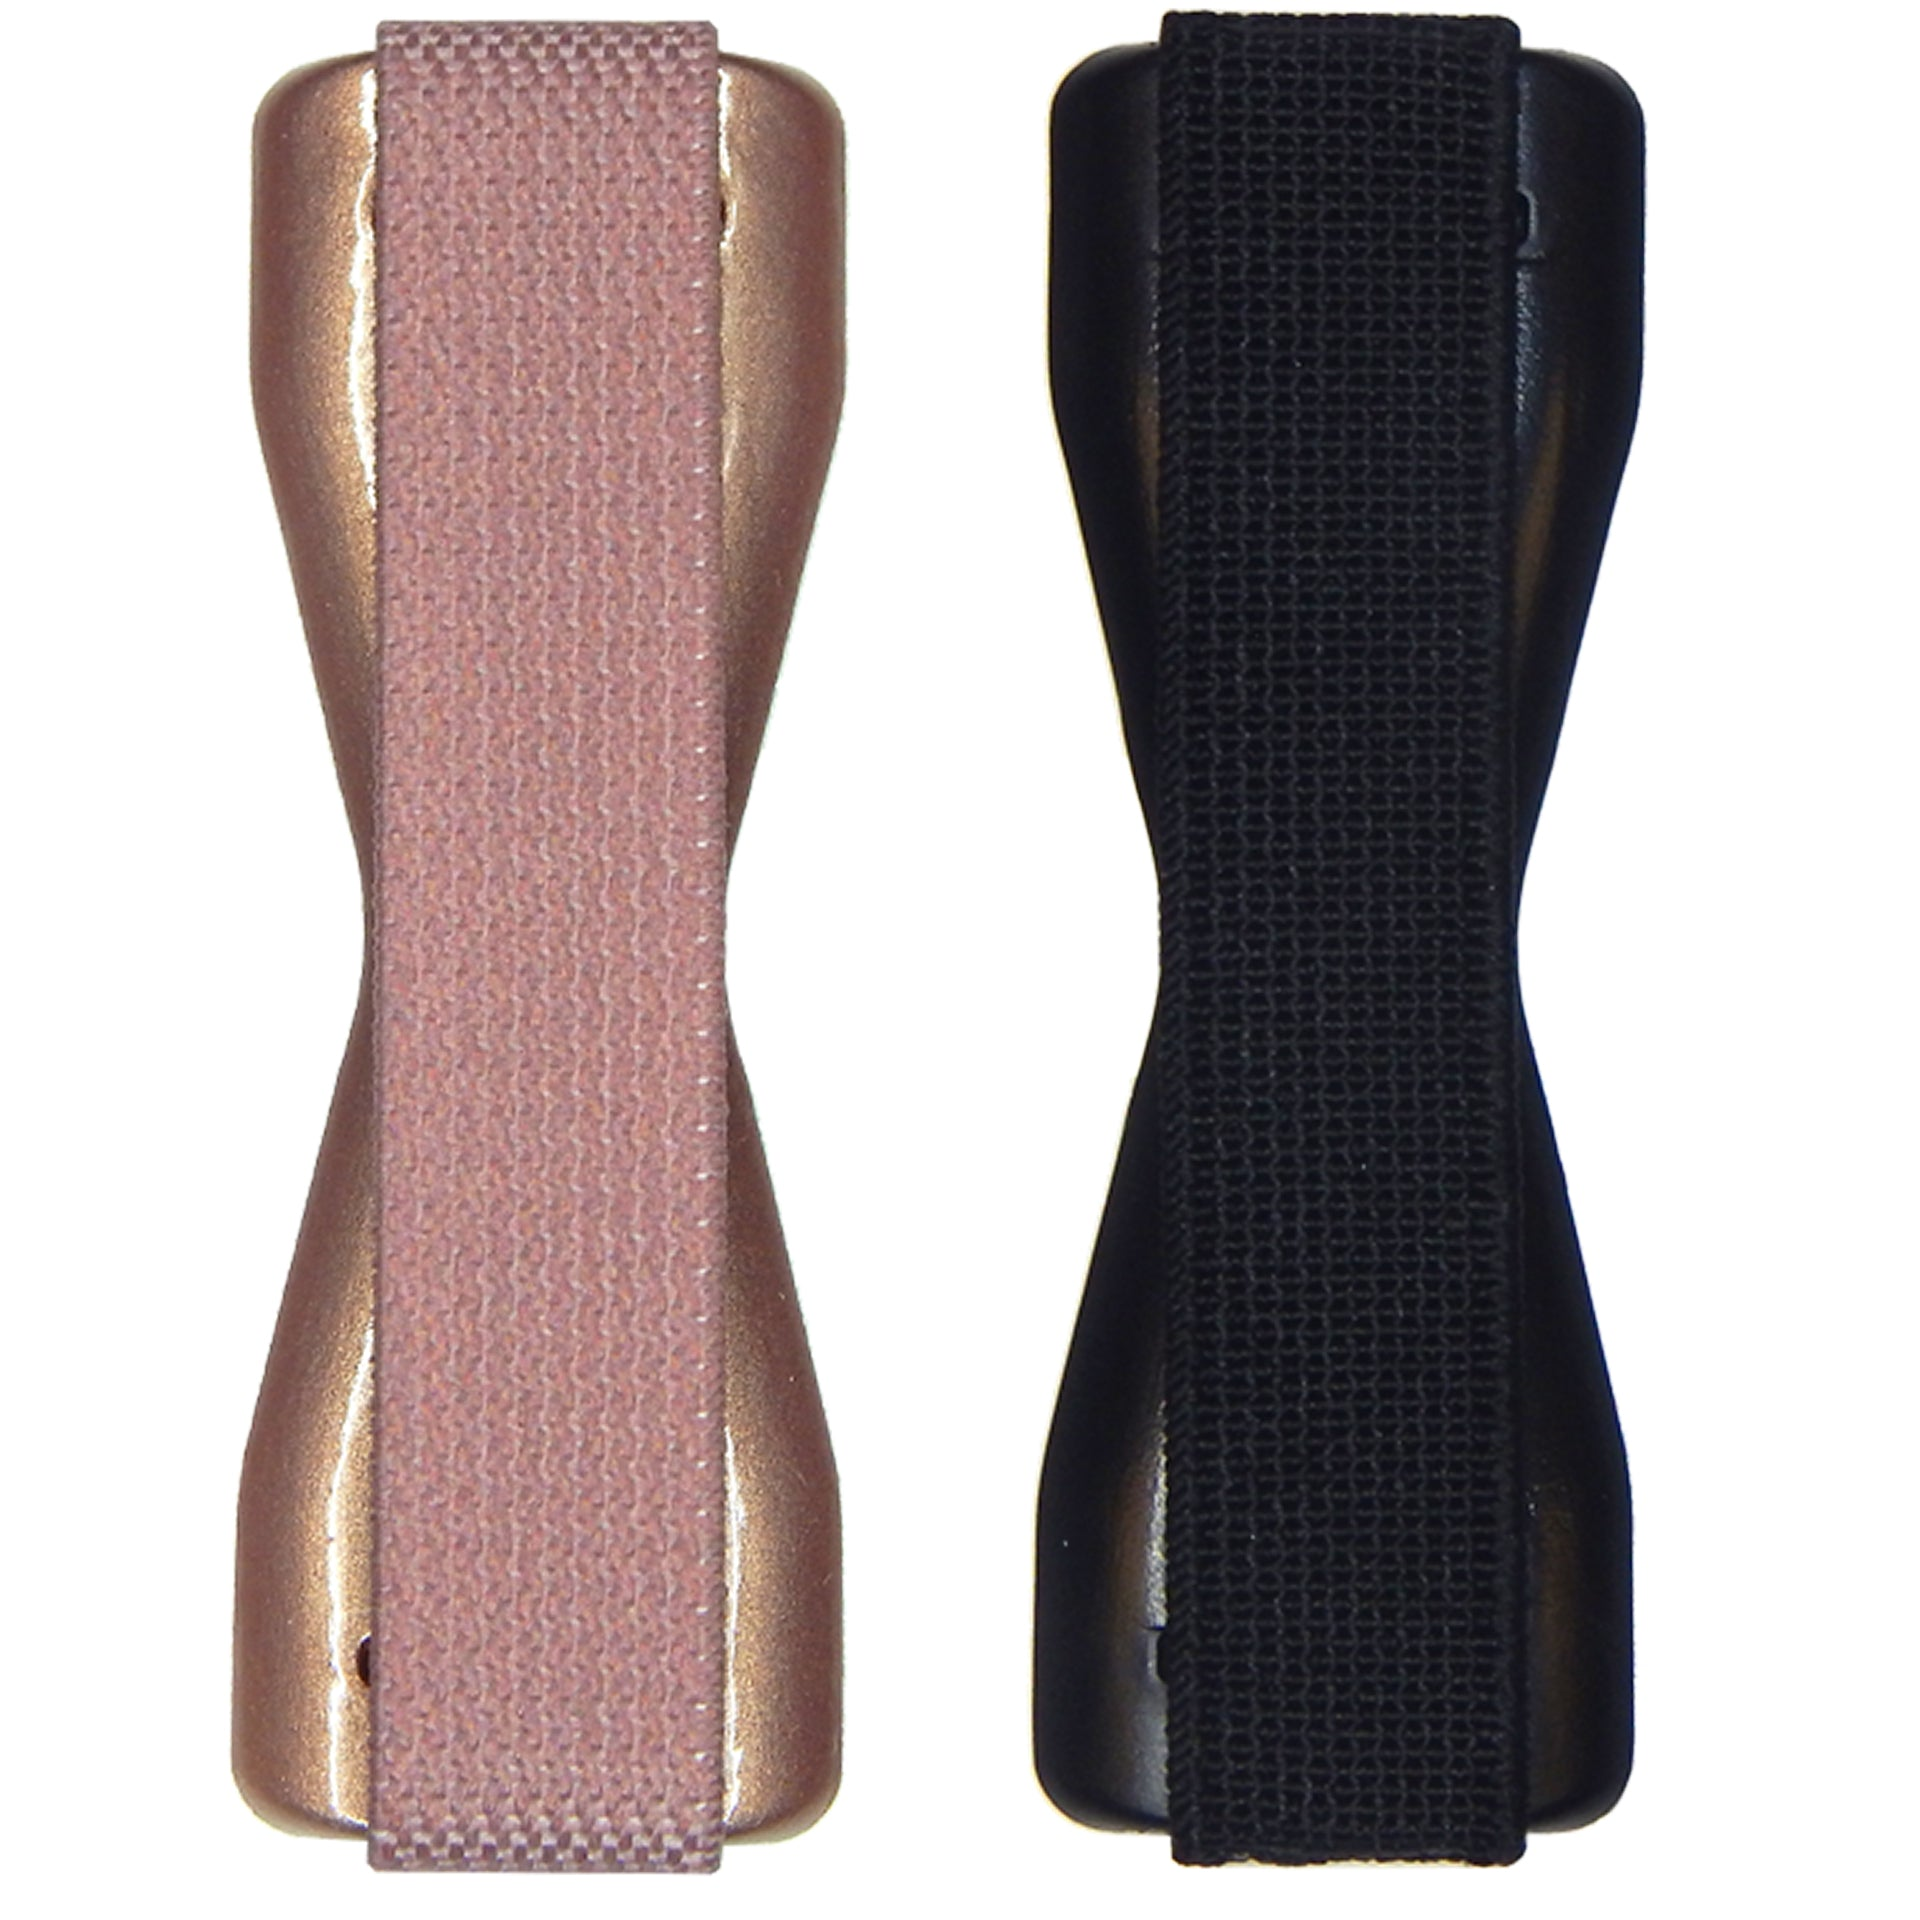 Solid Rose Gold & Black LoveHandle Phone Grip - 2 Pack Top Pair